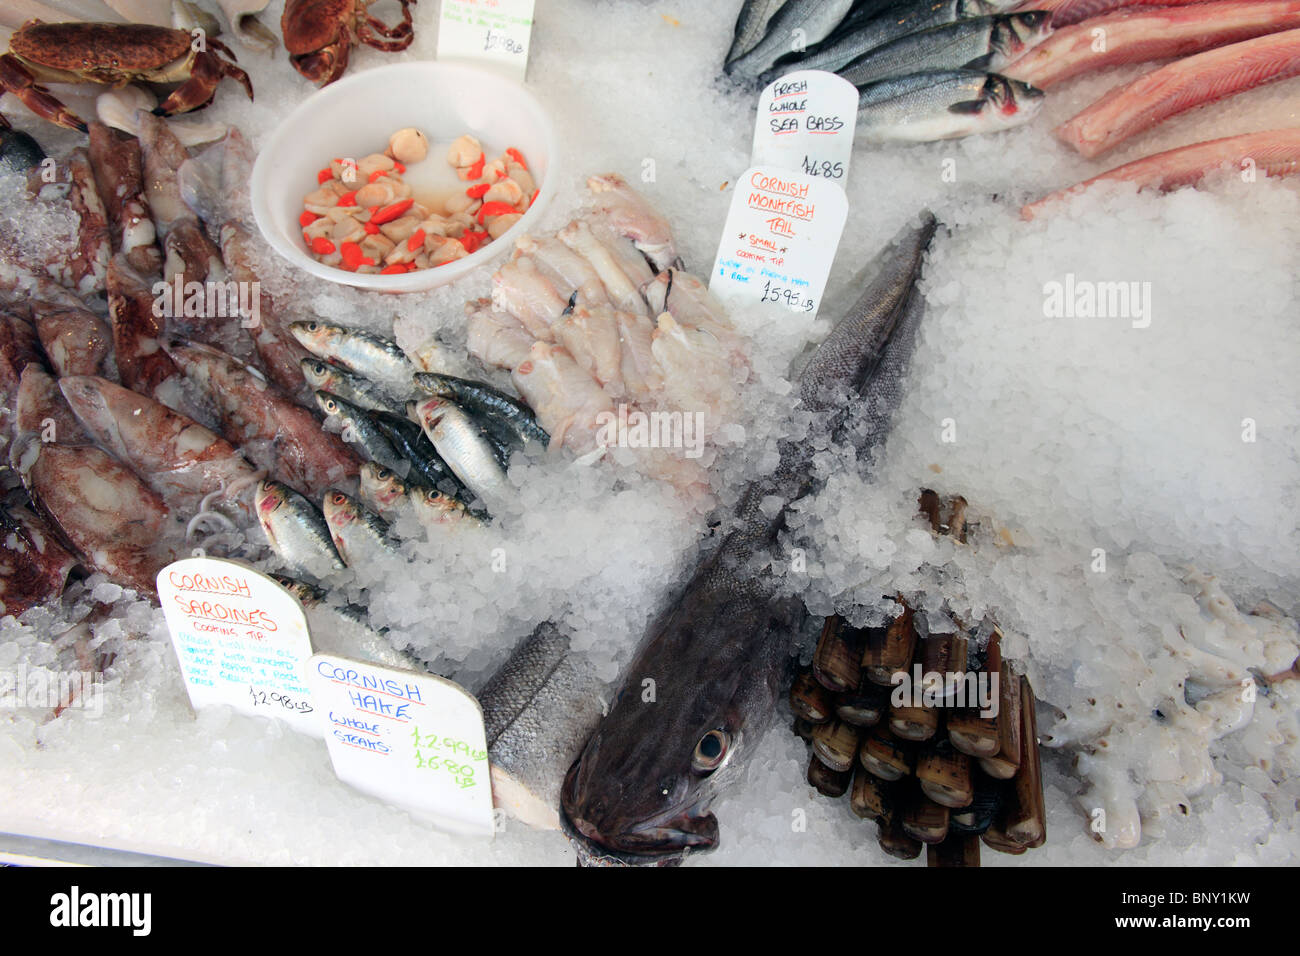 united kingdom littlehampton a wet fish display in a fishmongers stall - Stock Image